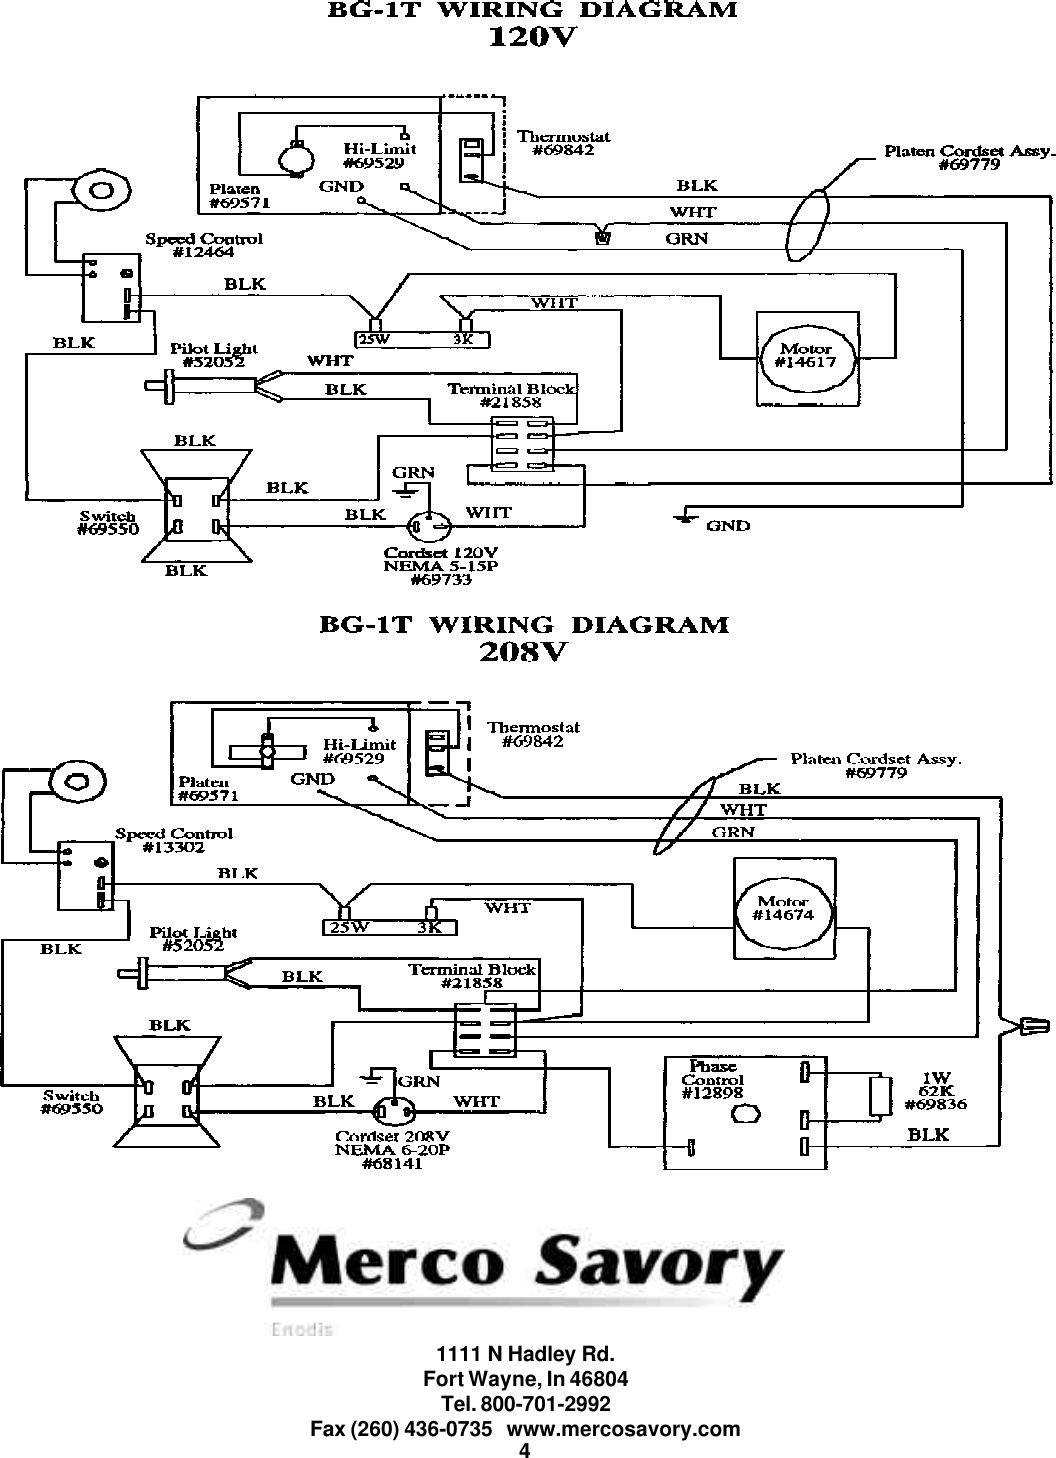 merco wiring diagrams | wiring diagram merco wiring diagram merco wiring diagrams